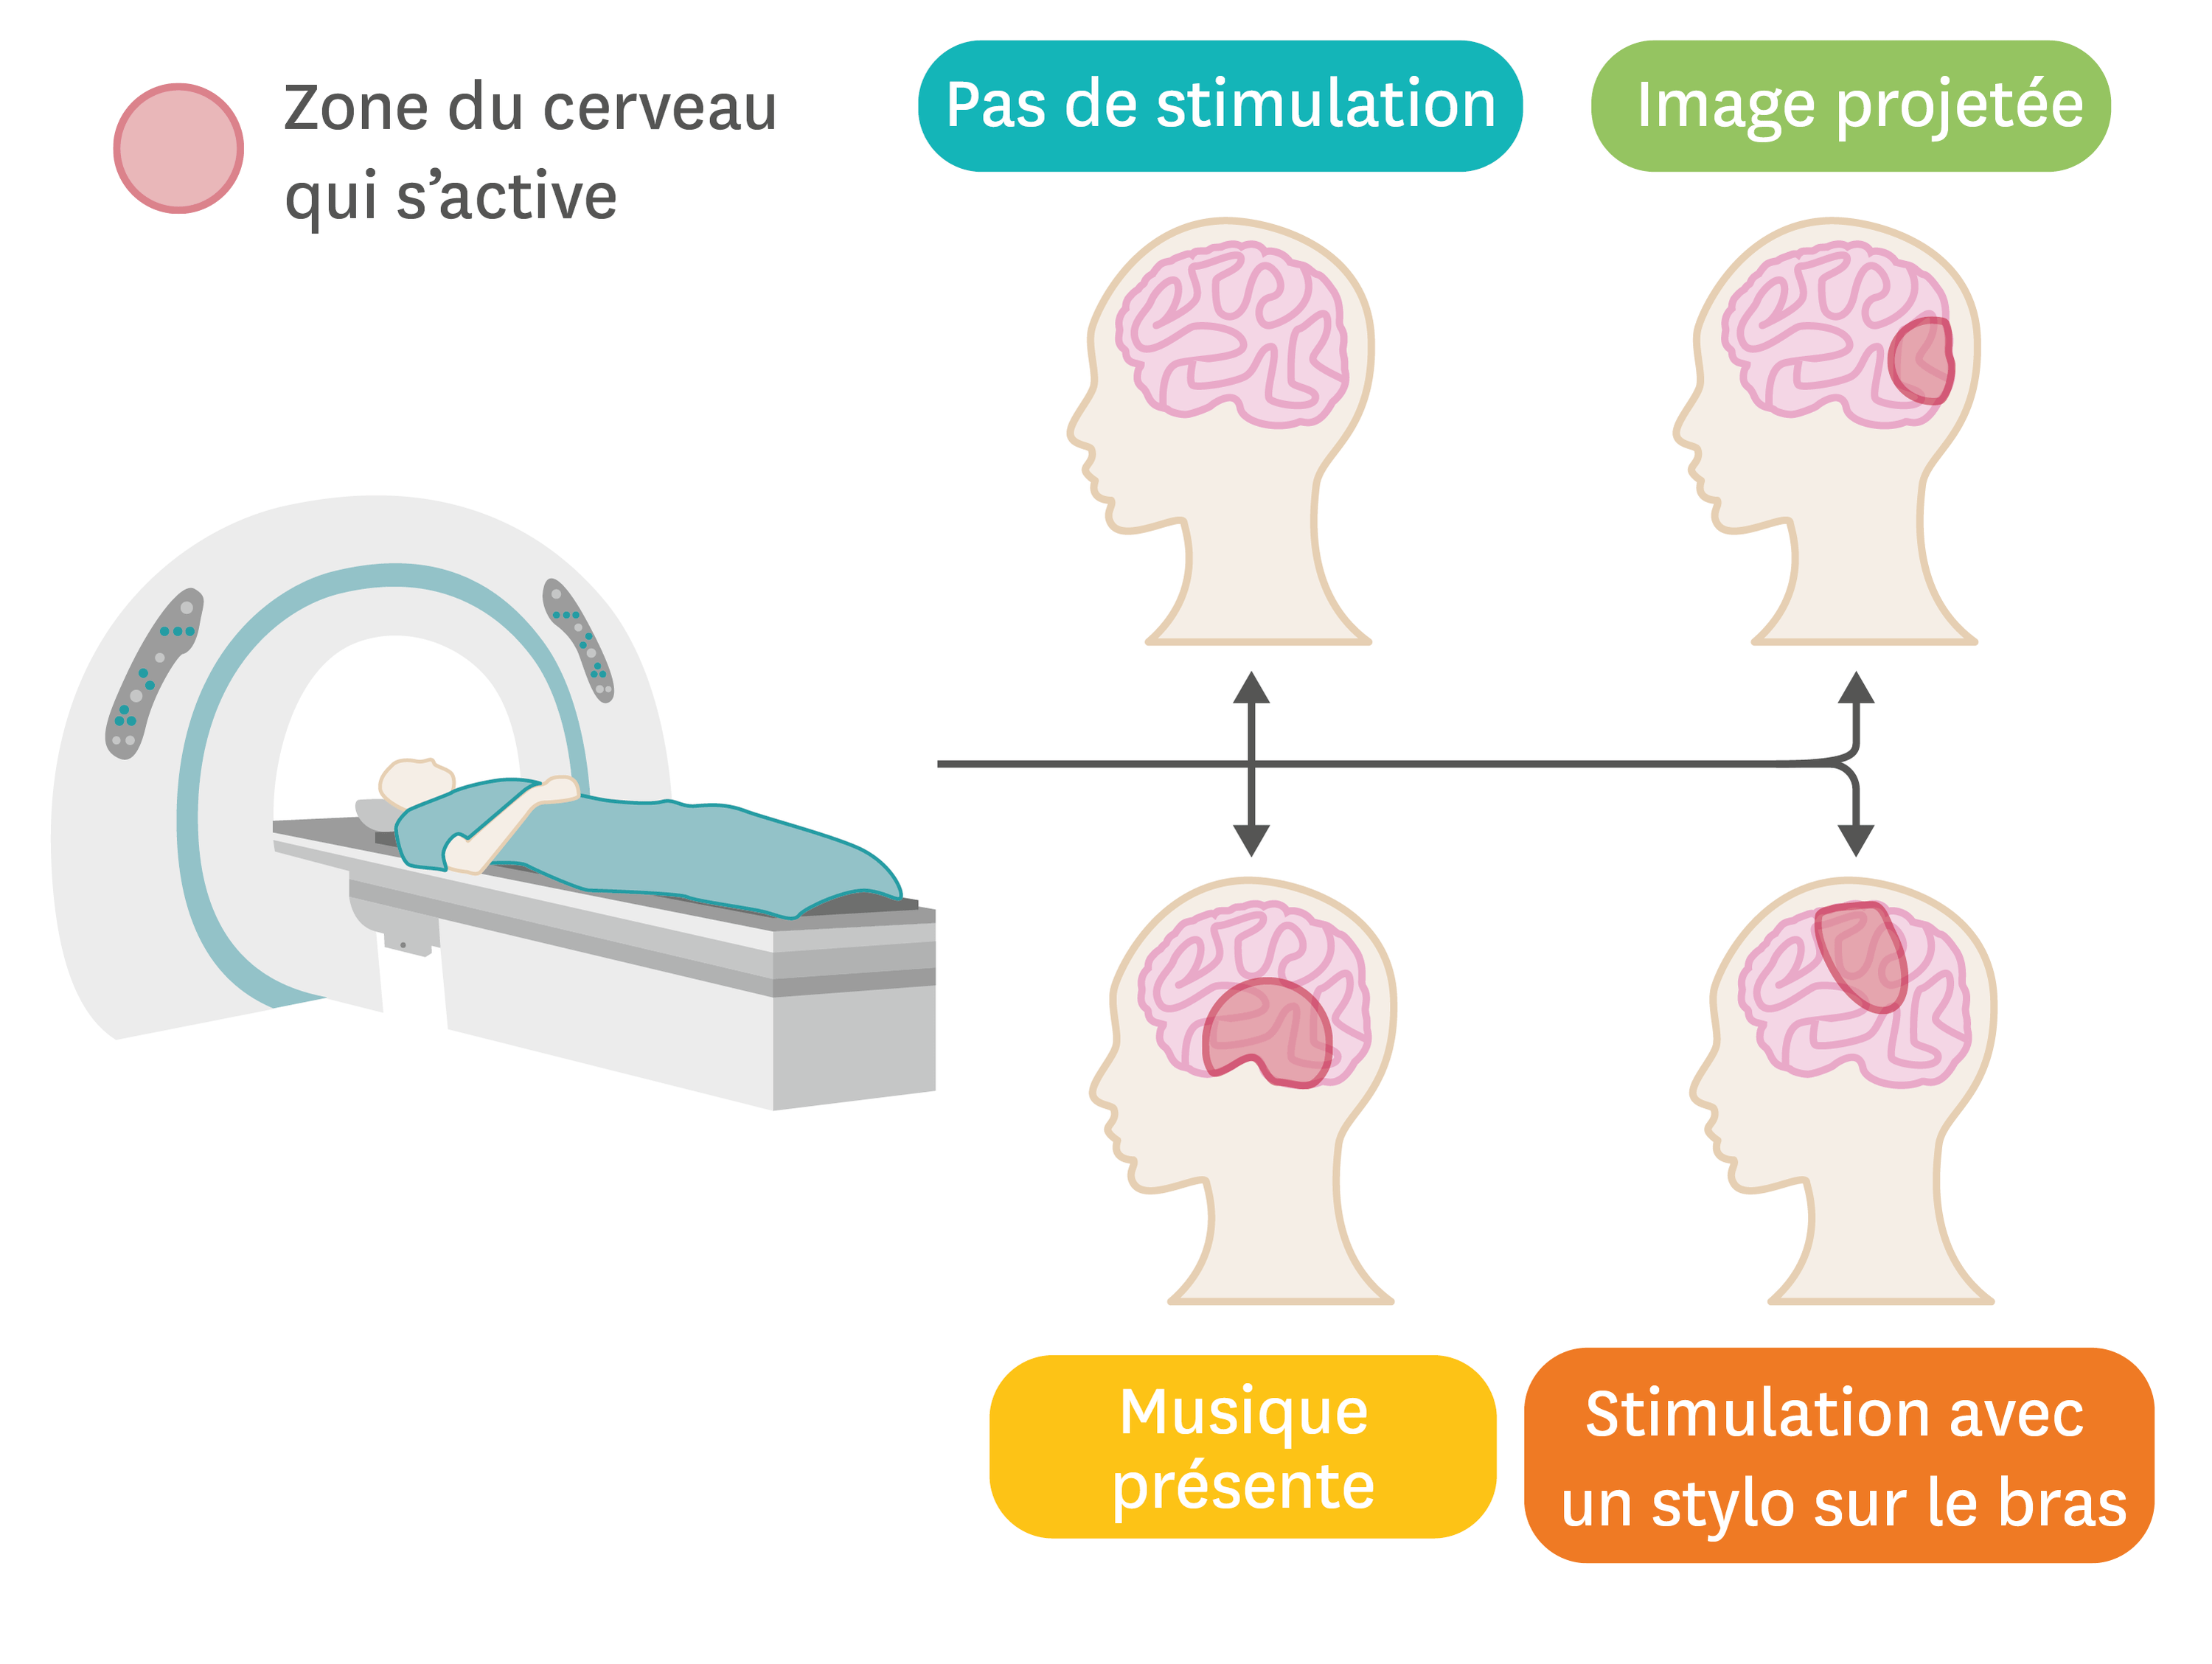 L'IRM permet de visualiser les zones d'activation du cerveau.